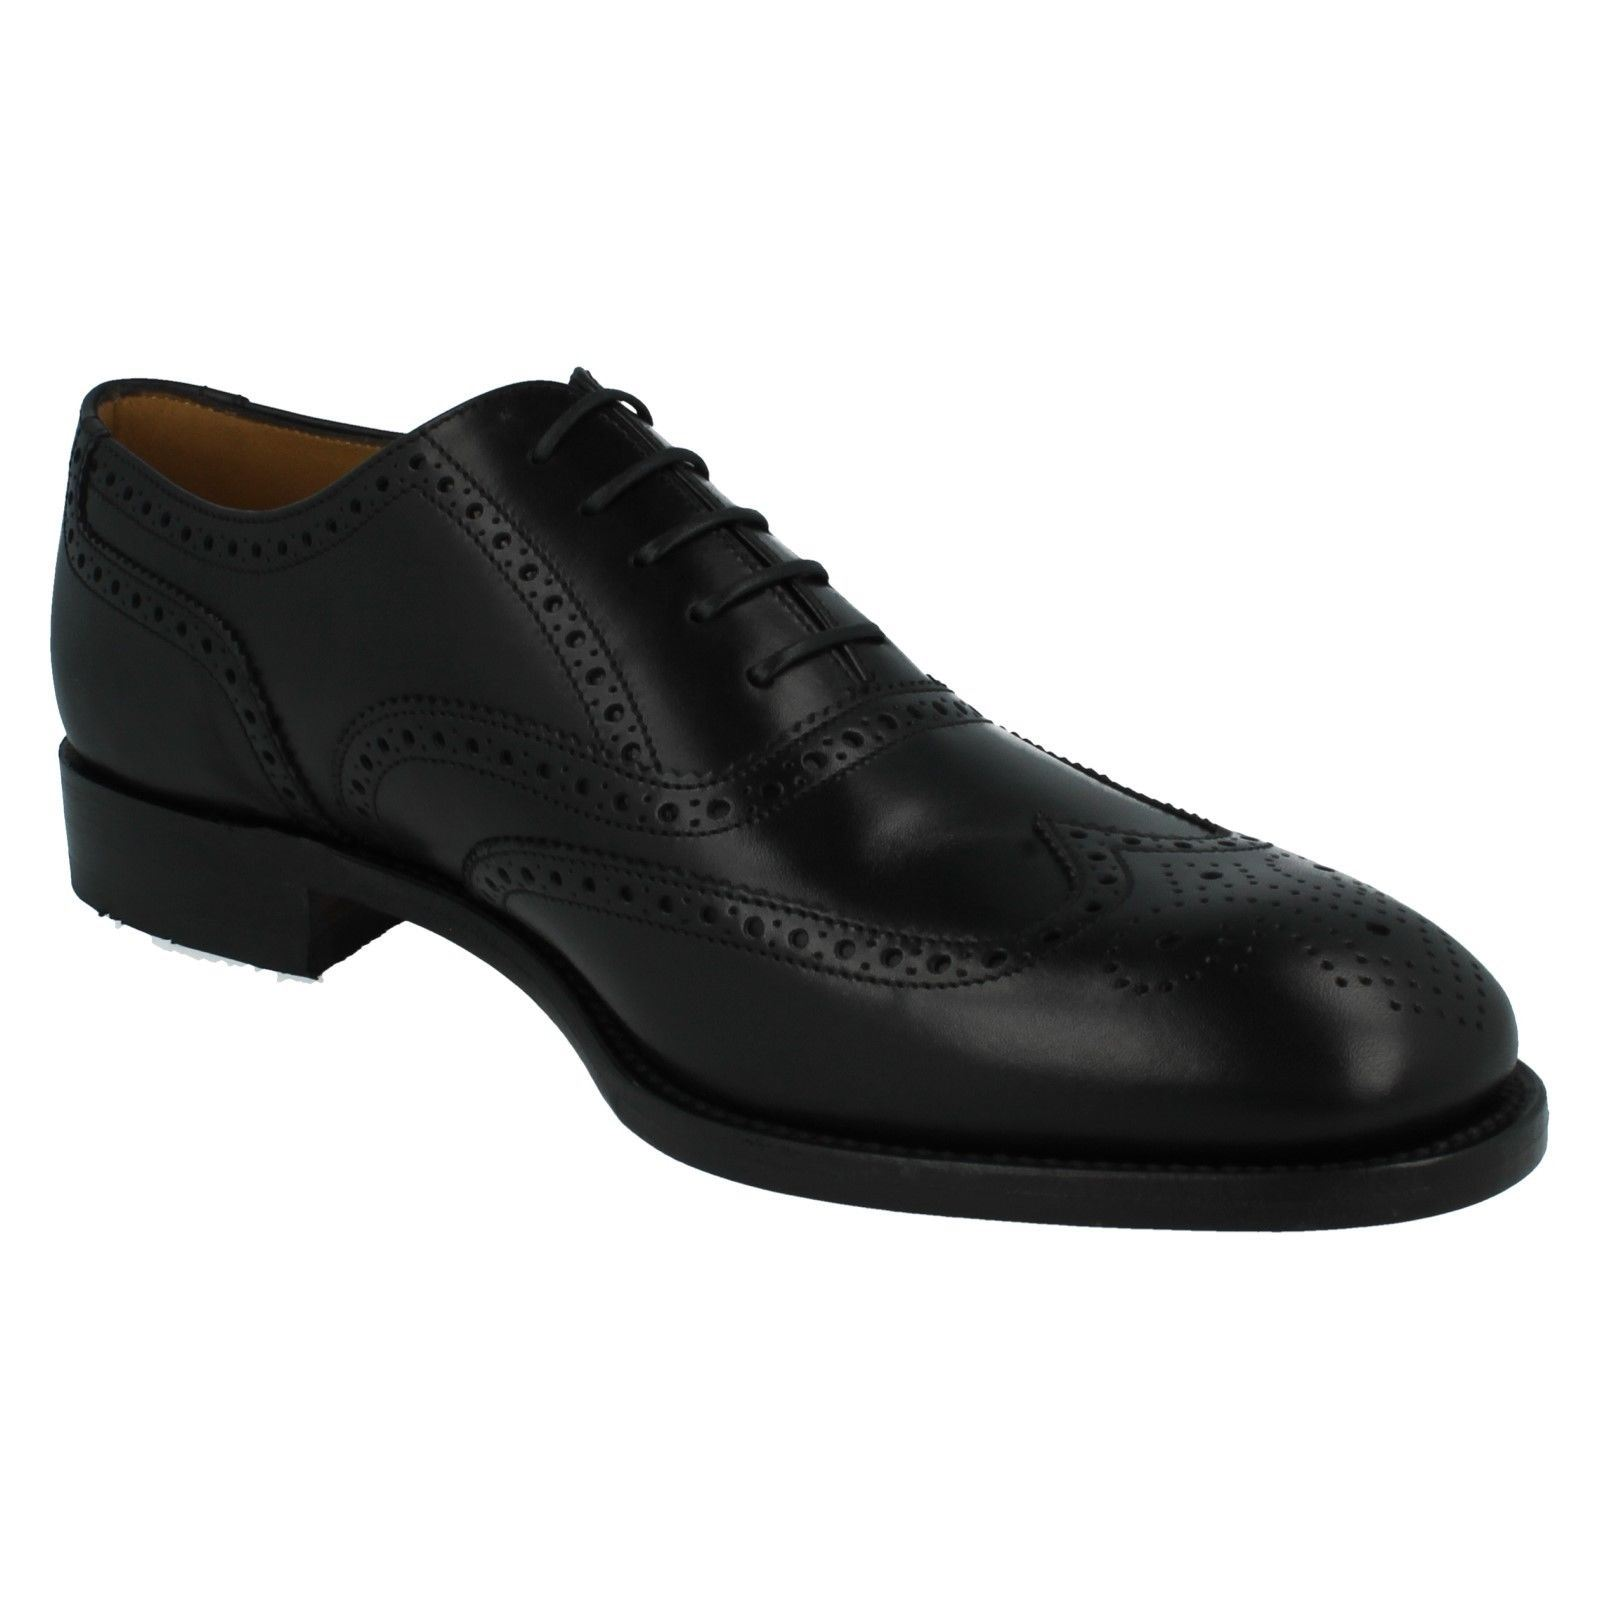 Herren Loake Leder Lace Schuhes Up Smart Brogue Schuhes Lace Severn2 ca174d